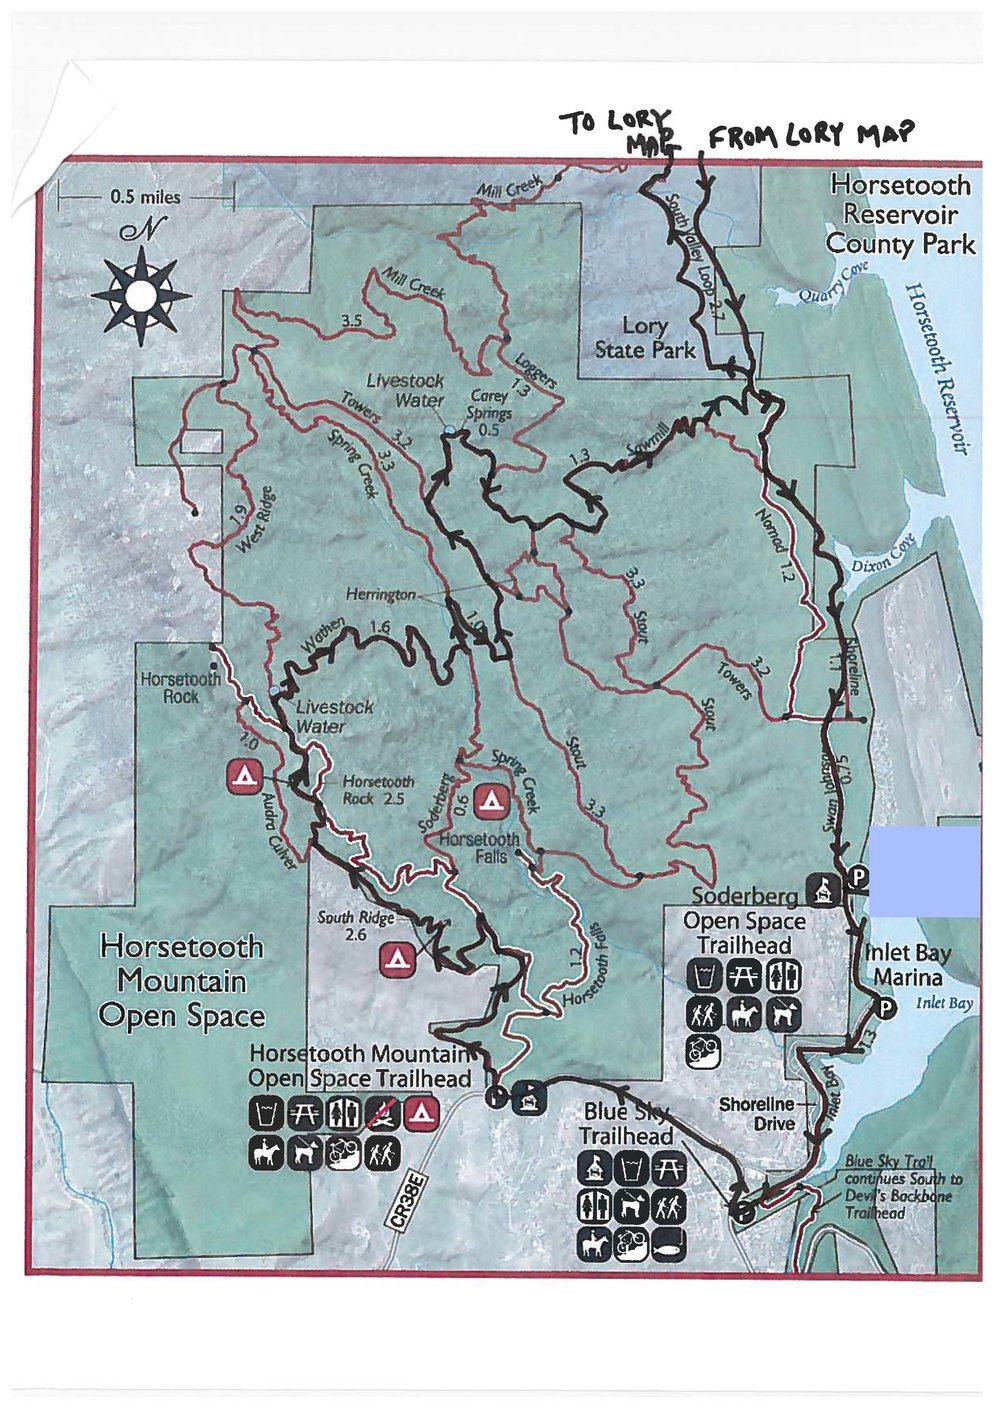 Copy of Map 2 - Horsetooth Mountain Park (the south bit)